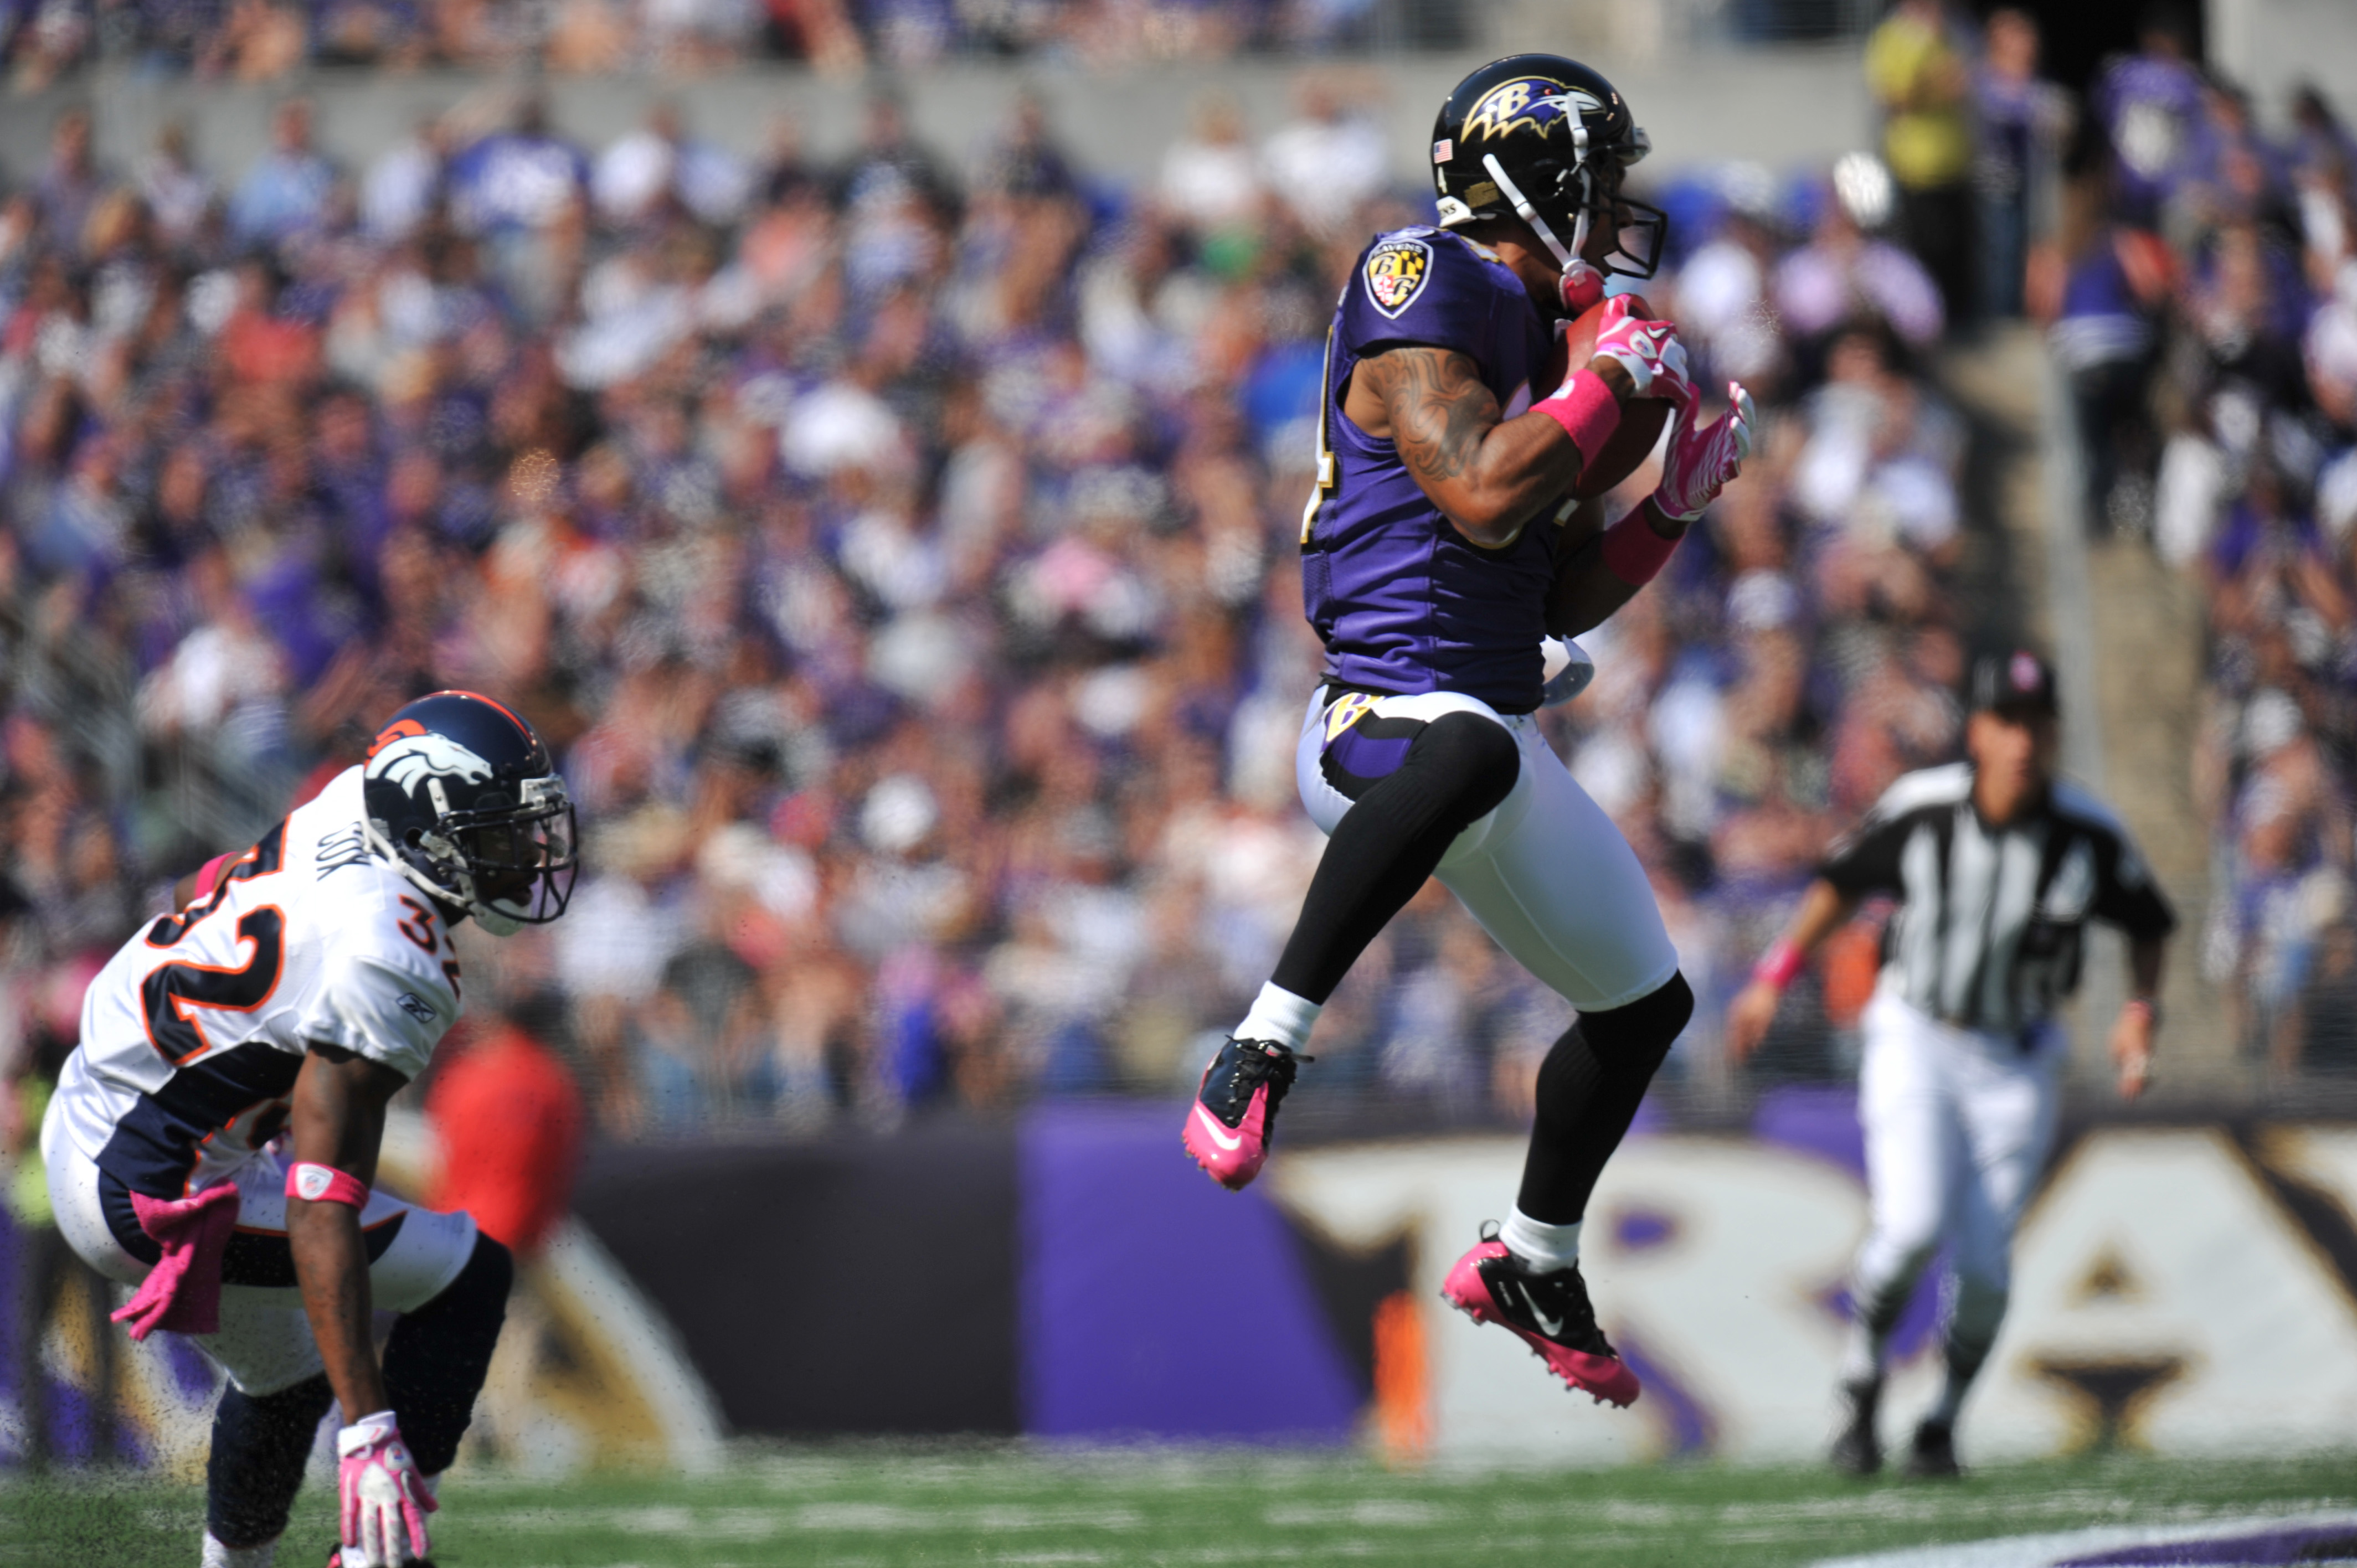 BALTIMORE, MD - OCTOBER 10:  T.J. Houshmandzadeh #84 of the Baltimore Ravens makes a catch against the Denver Broncos at M&T Bank Stadium on October 10, 2010 in Baltimore, Maryland. Players wore pink in recognition of Breast Cancer Awareness Month. The Ra